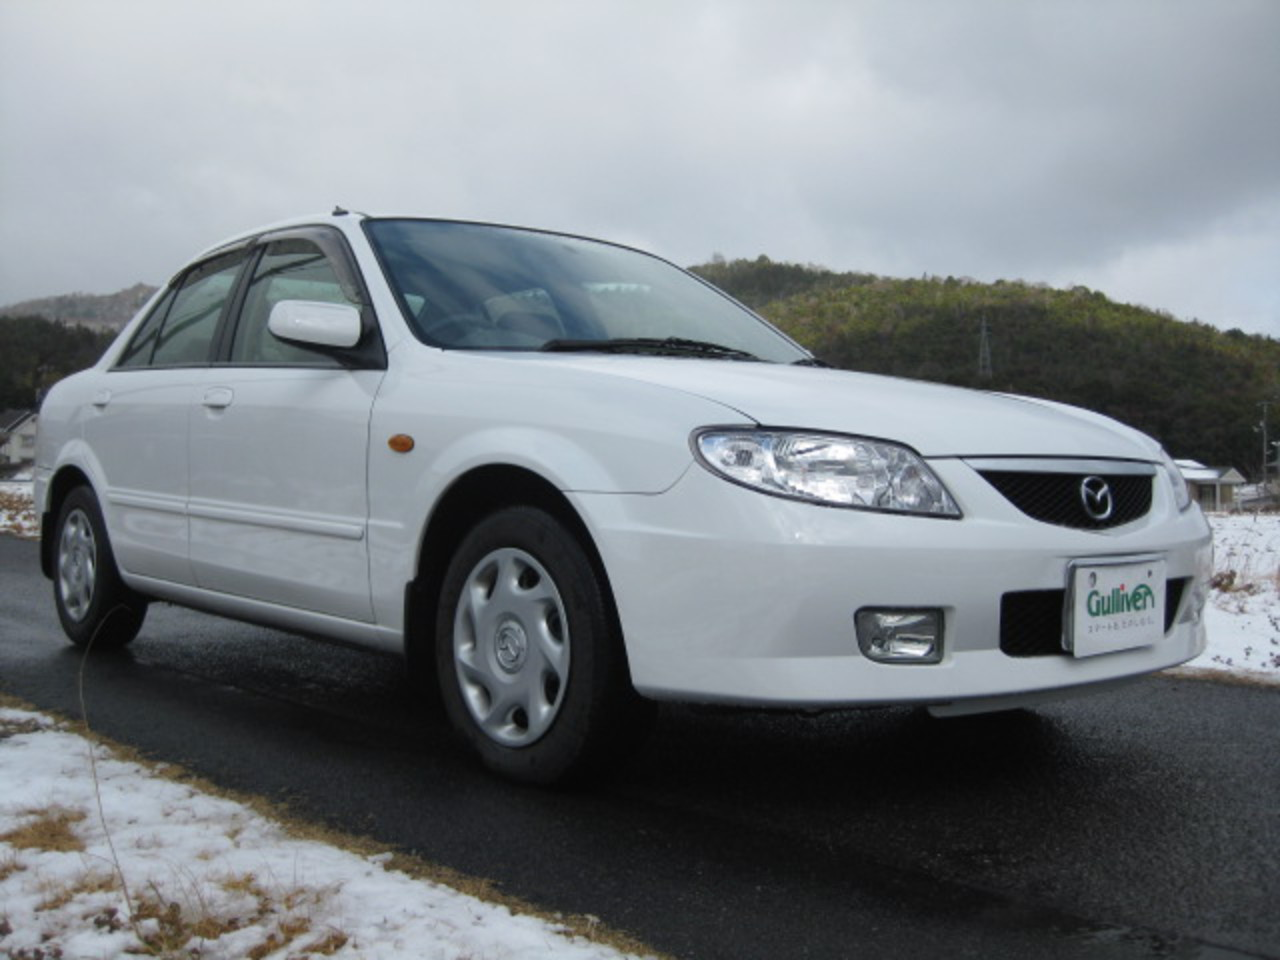 Mazda Familia LS. View Download Wallpaper. 640x480. Comments